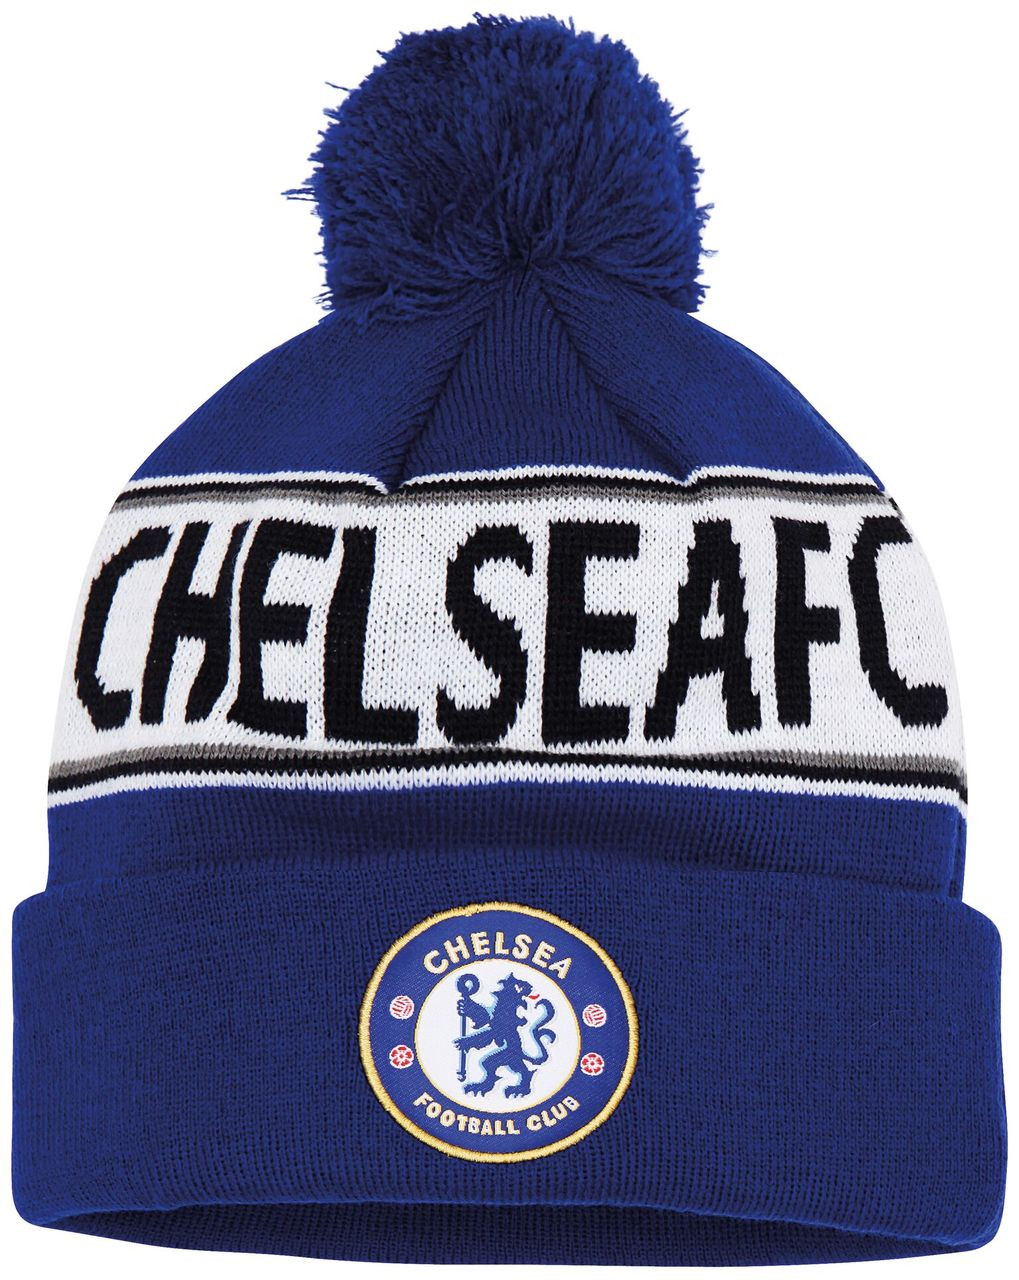 Adult Chelsea FC Text Beanie - Speed One Sports 49af1403fb46